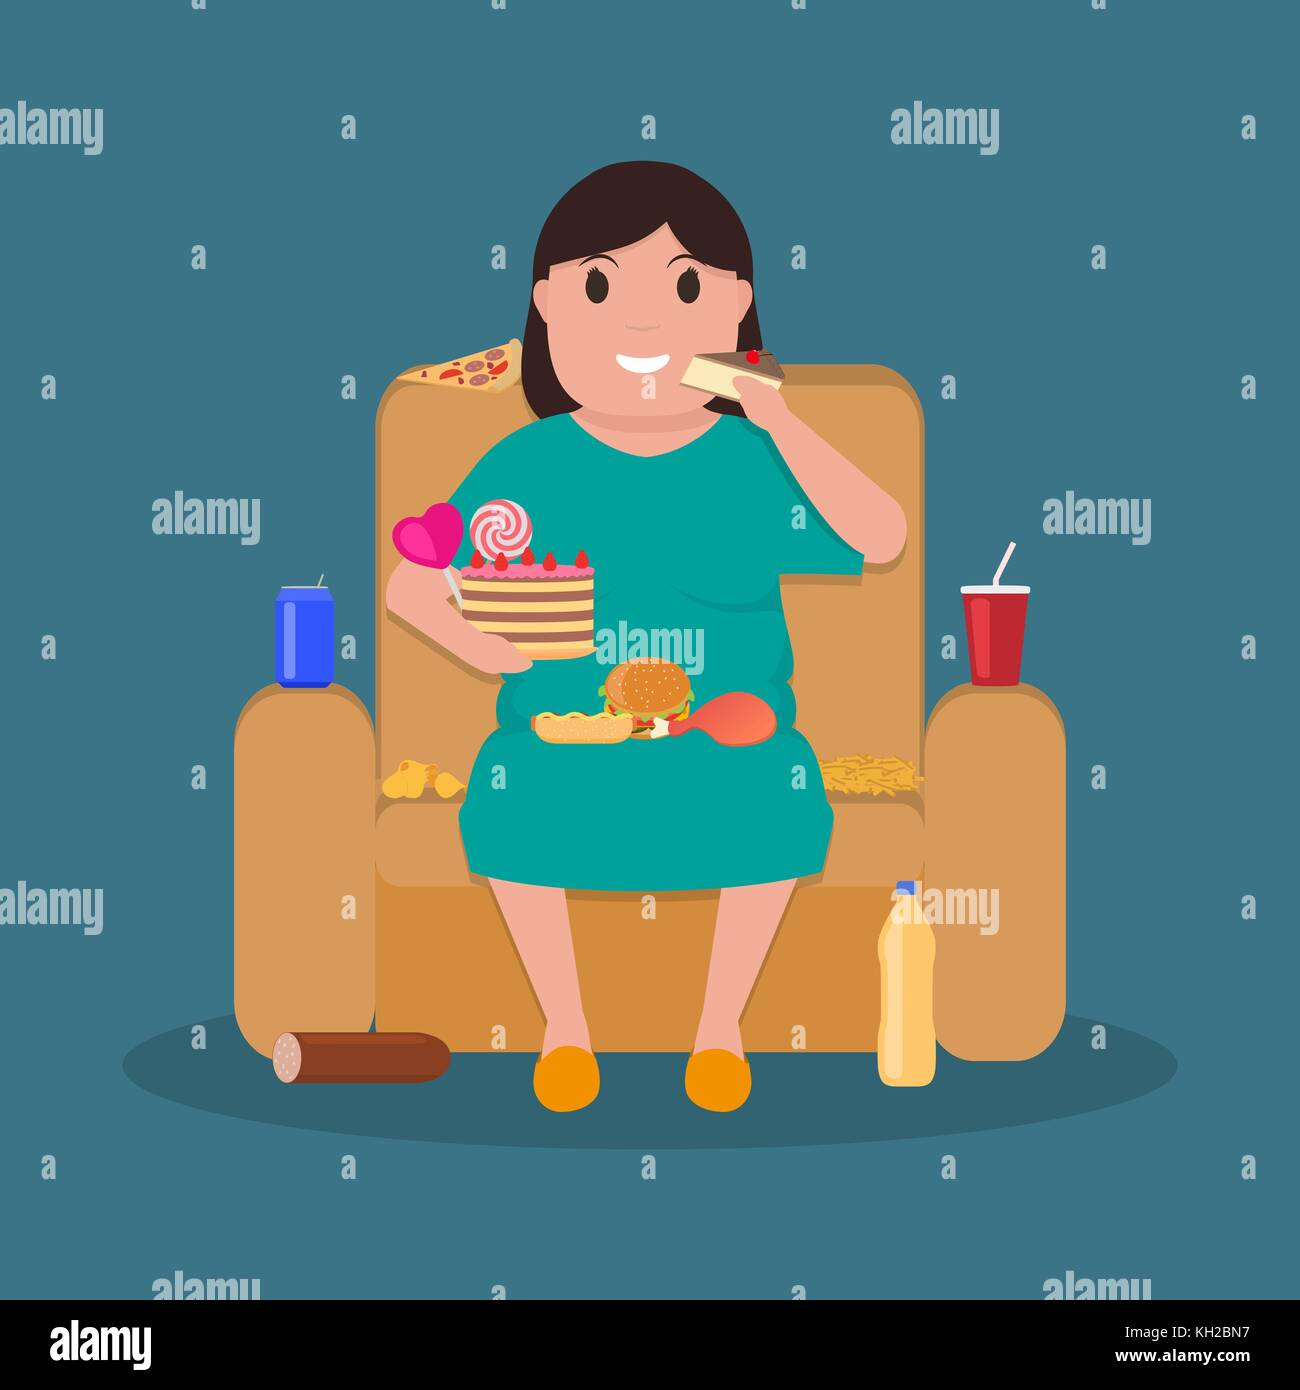 Cartoon fat woman sitting on couch eat junk food - Stock Vector